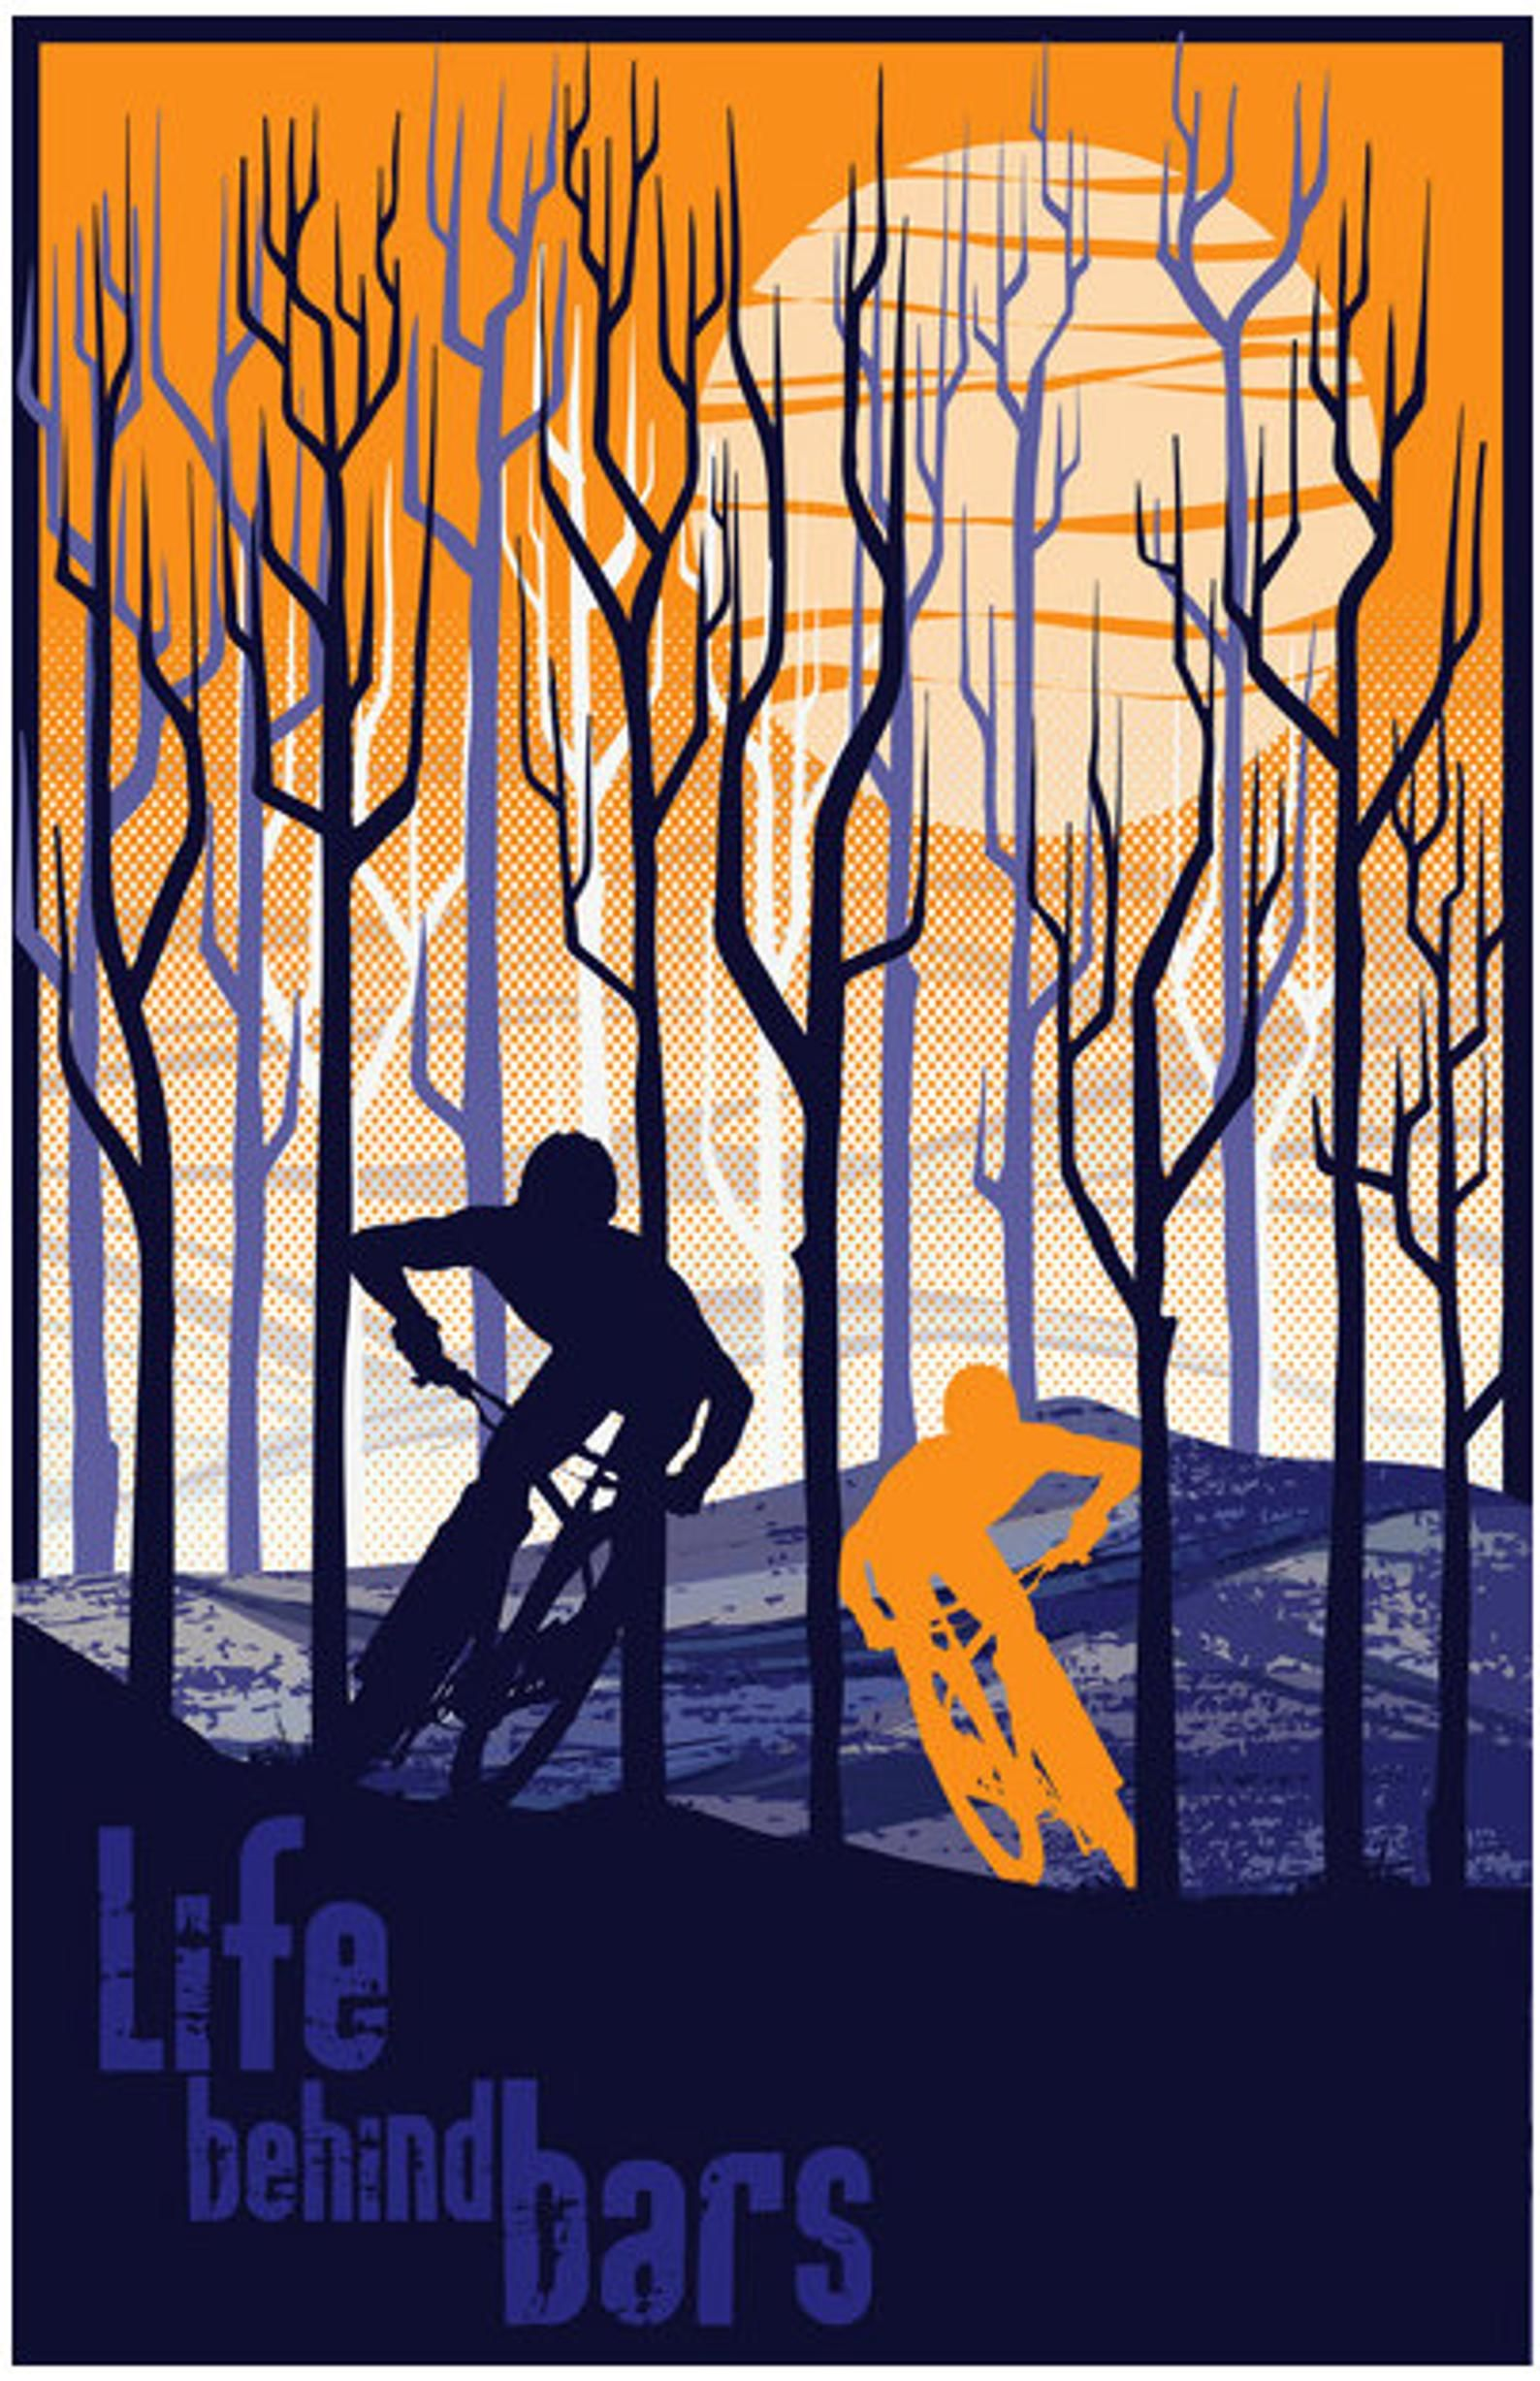 Retro Vintage Mountain Bike Illustration Poster Print 11x17 Etsy Vintage Mountain Bike Mountain Bike Art Bike Poster